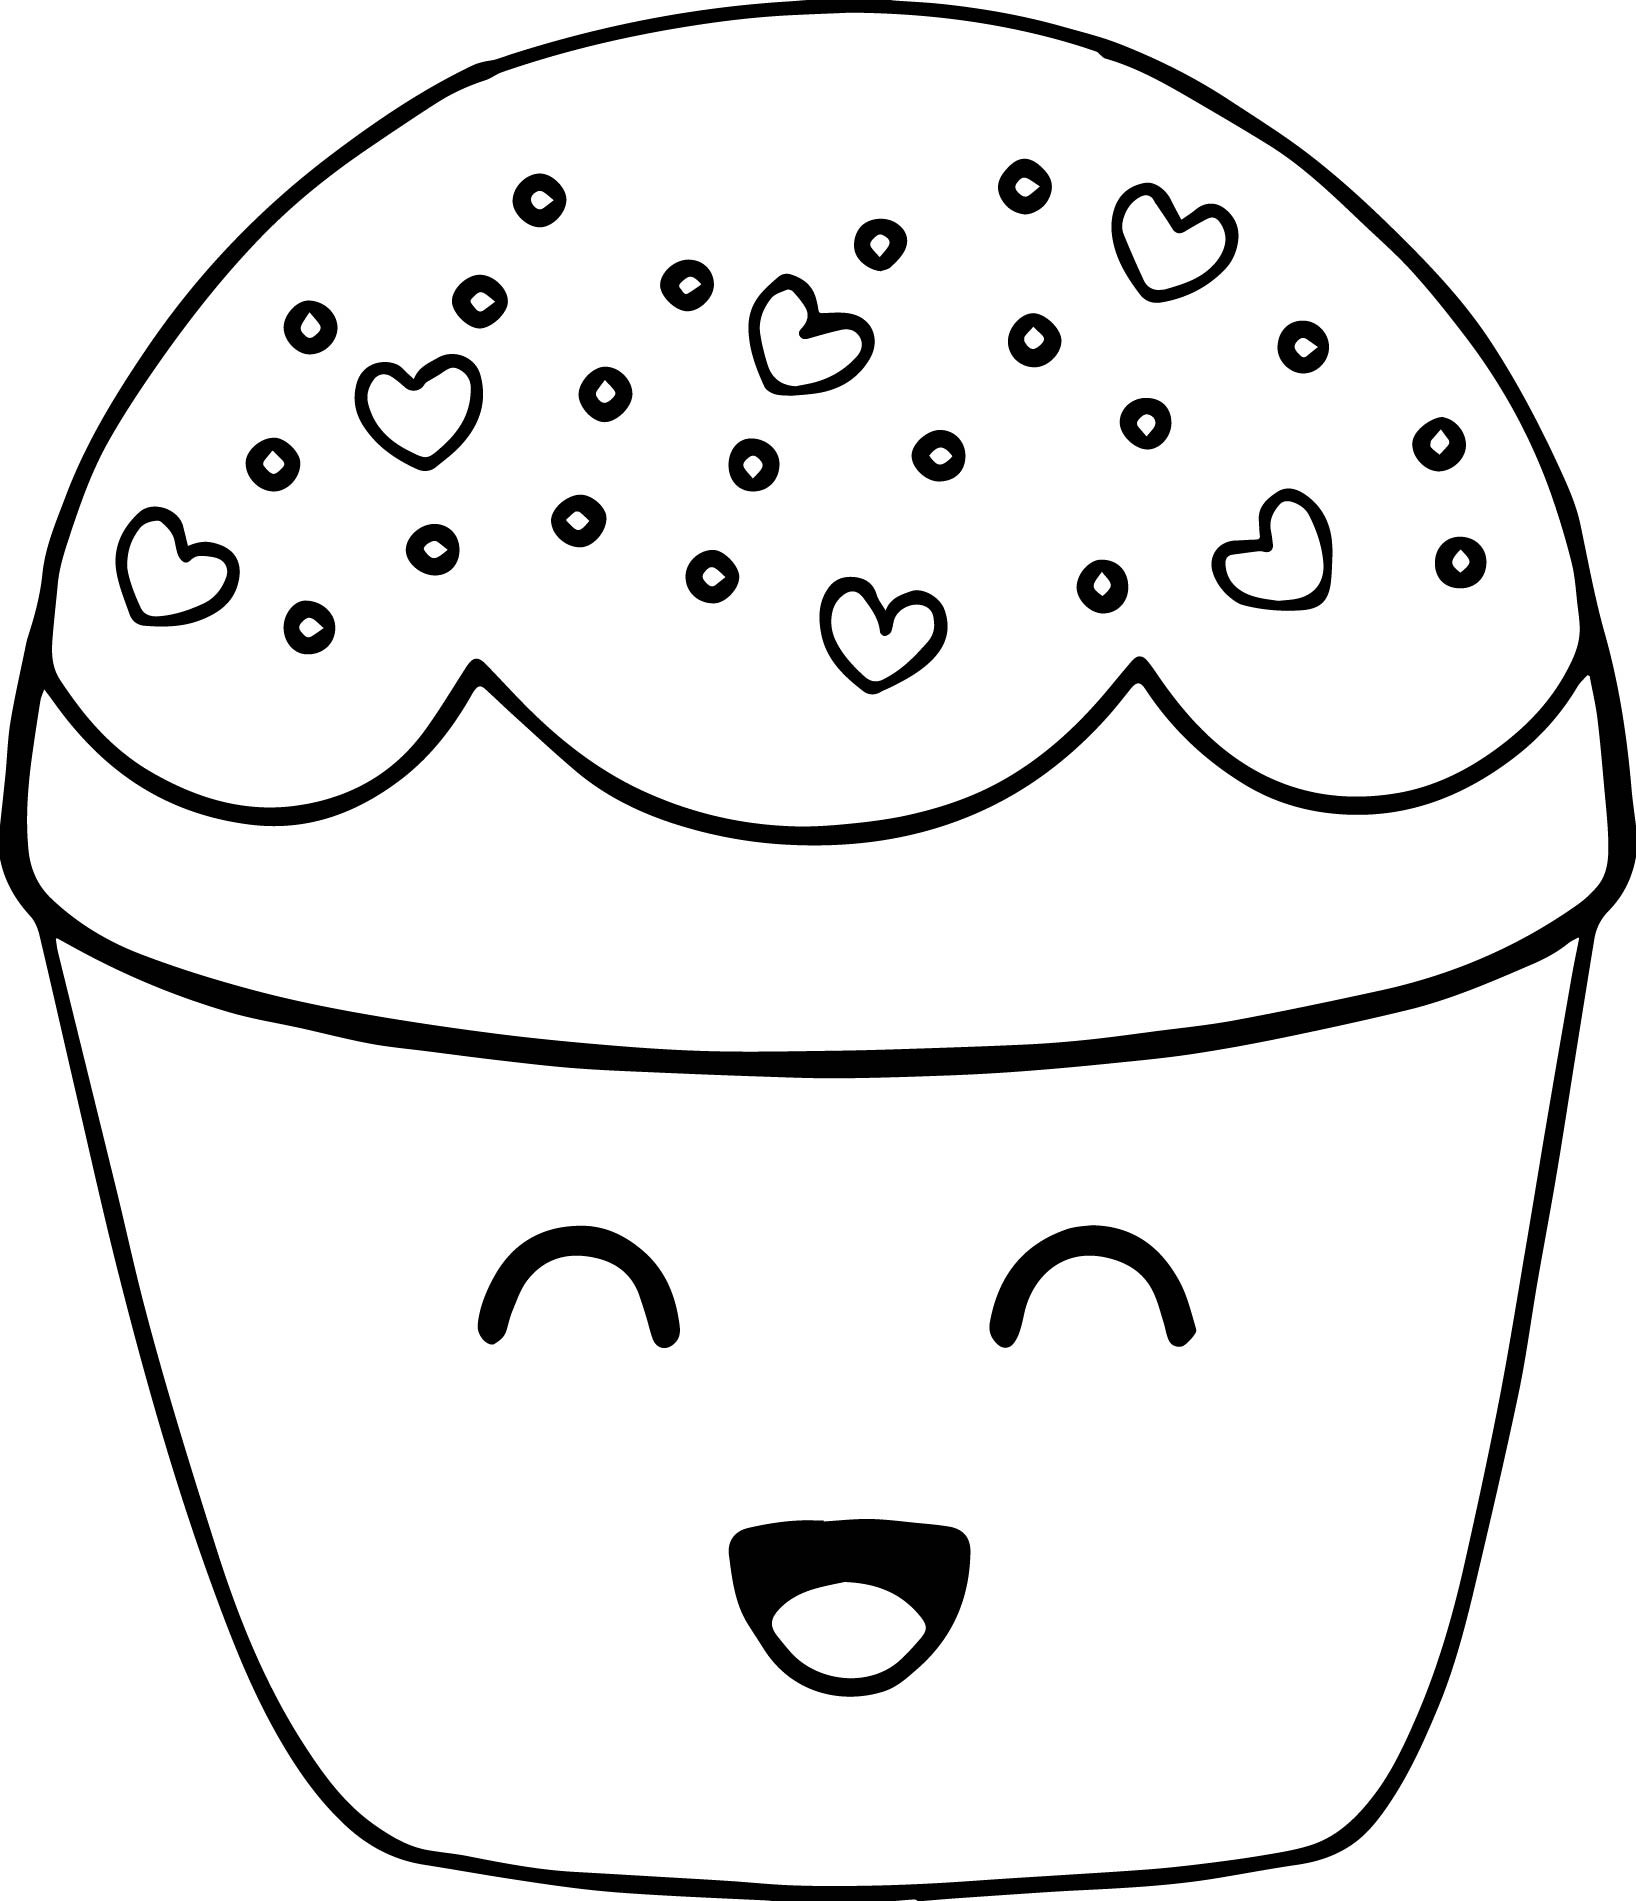 1636x1901 Stunning Cupcakes Coloring Pages Printable Photos Entry Level Cool